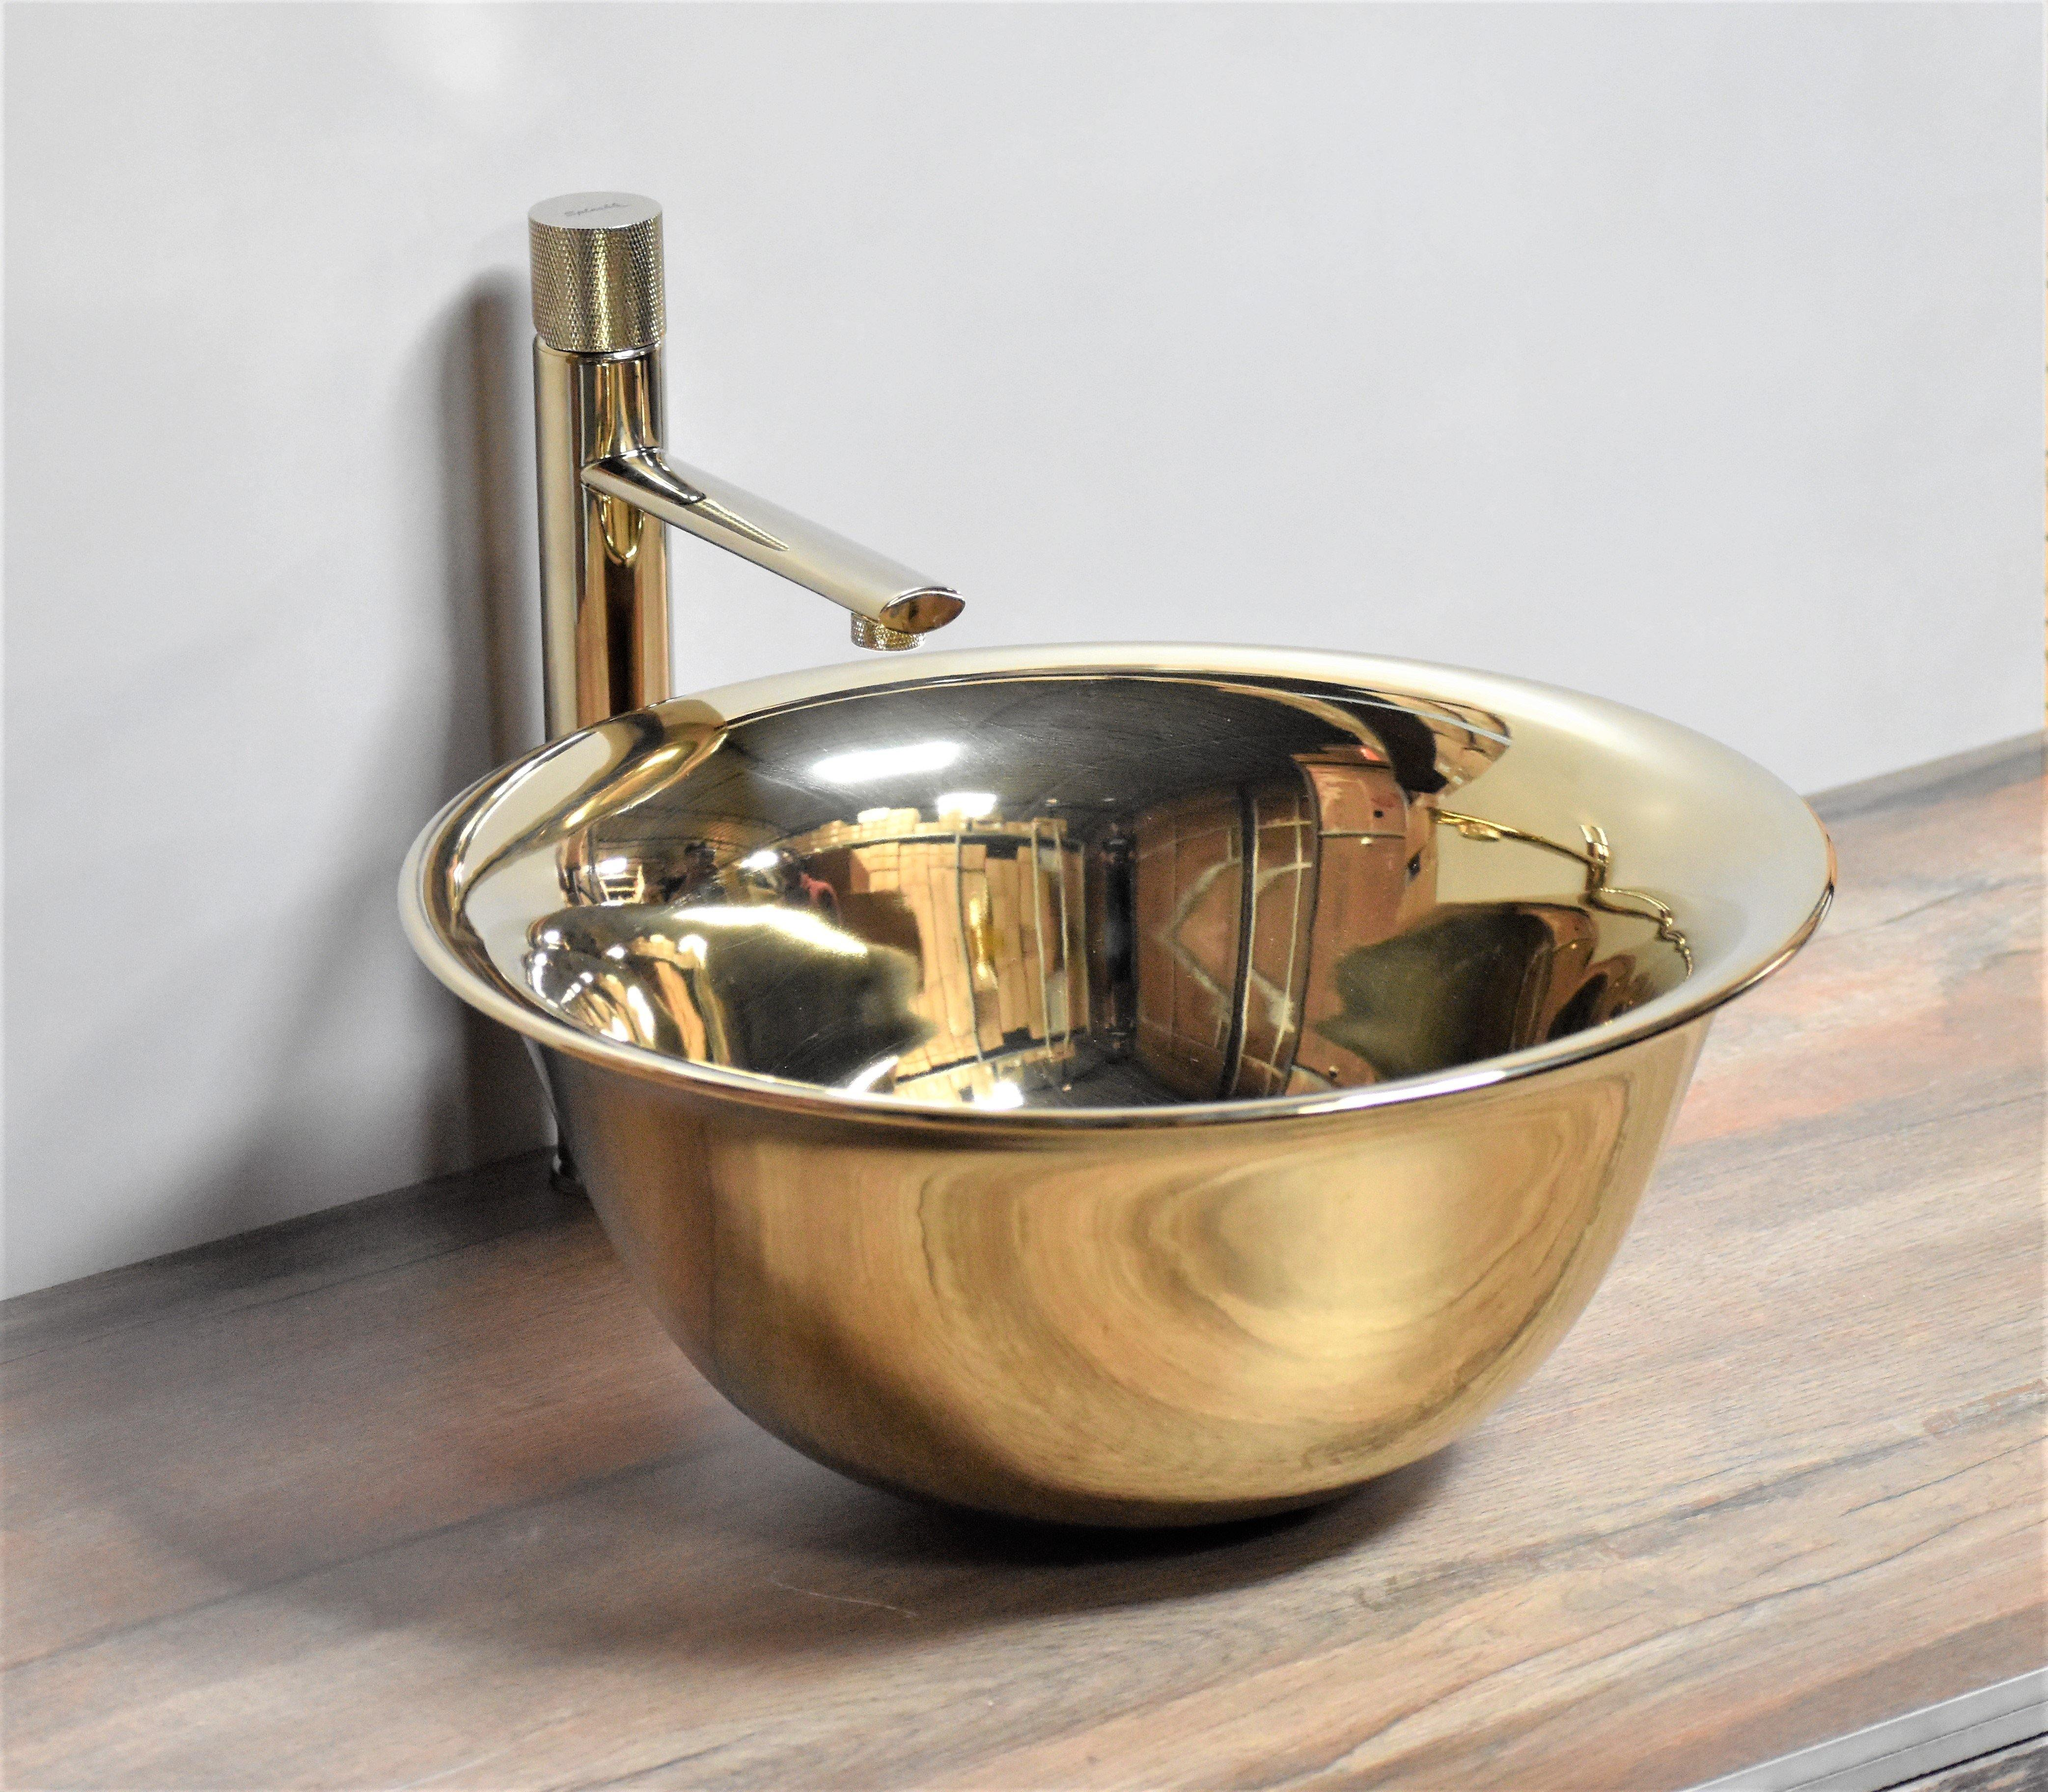 Ceramic Bathroom Sink Above Counter Vessel Sink Bowl Wash Basin Vanity Sink in Round shape Countertop Golden color 40 x 40 x 18.5 CM